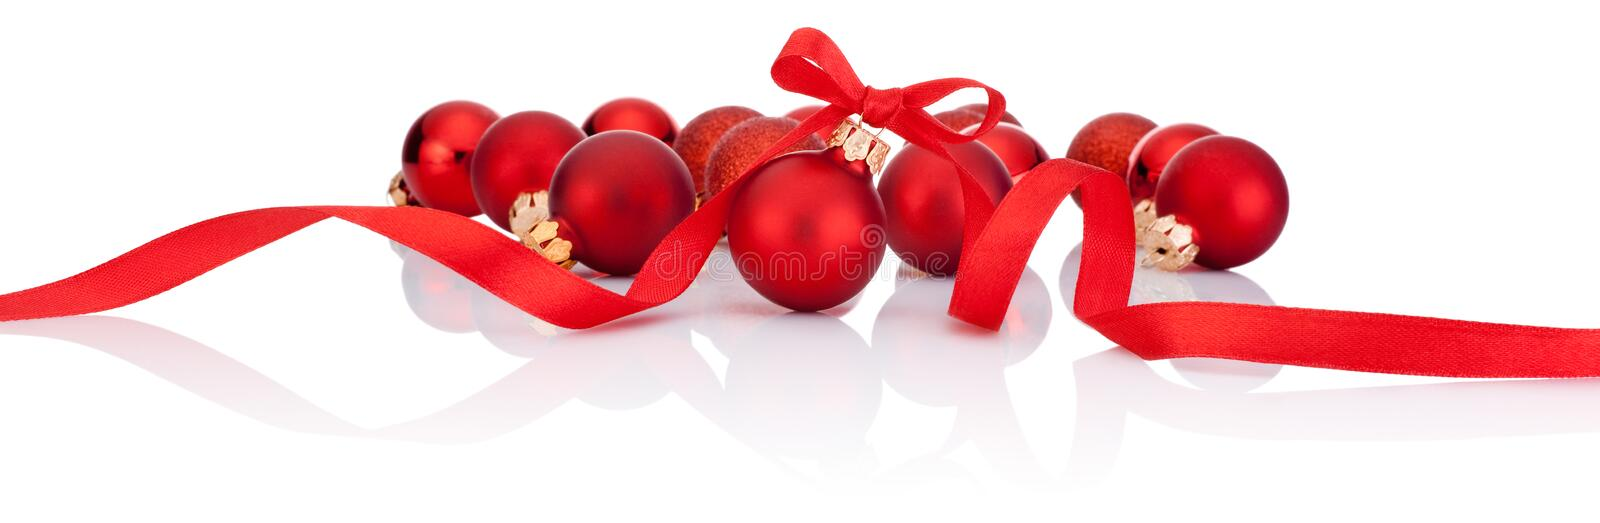 Red Christmas balls with ribbon bow Isolated on white background royalty free stock photography